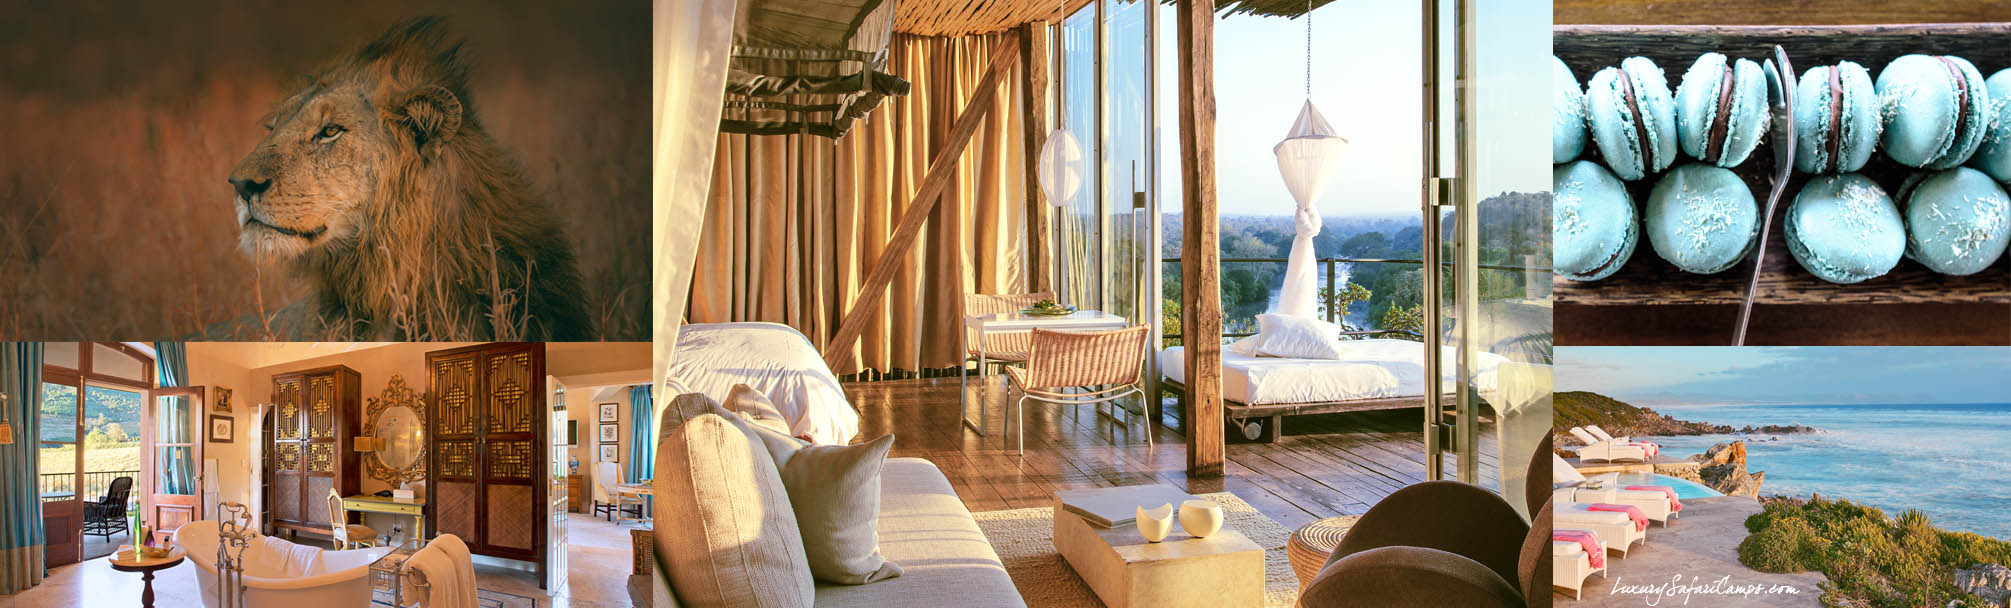 A Royal South African Safari